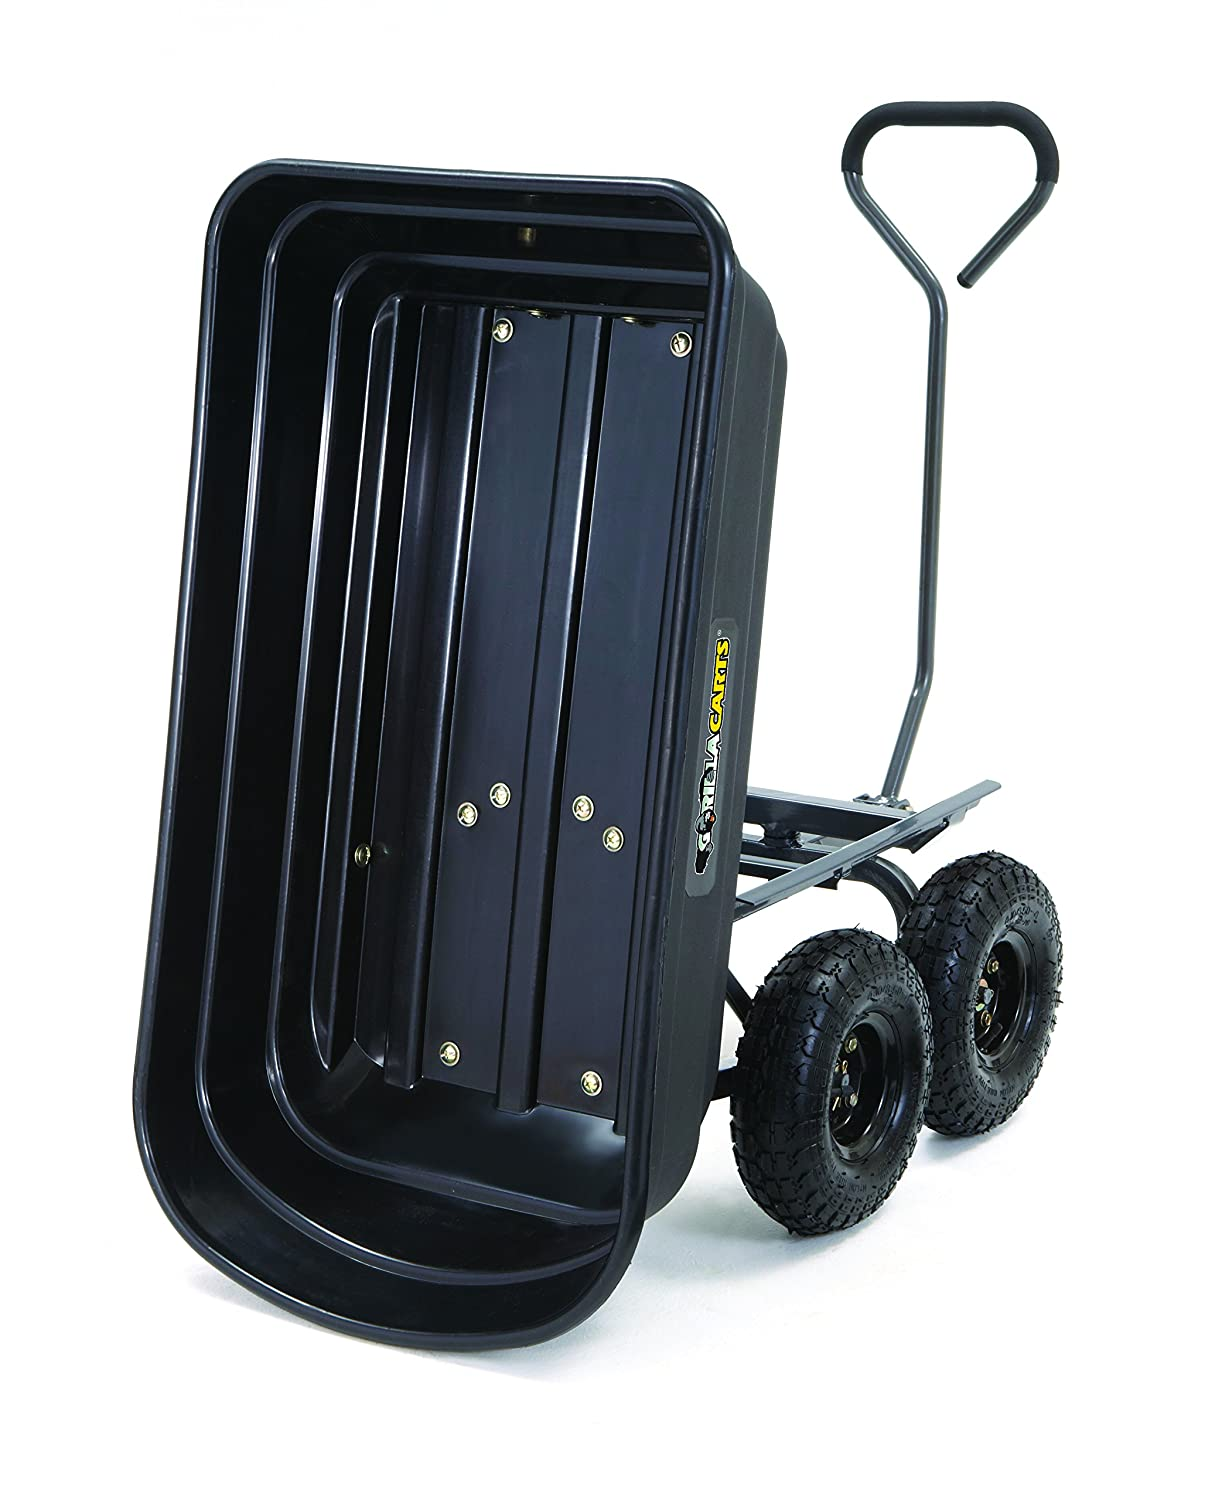 Amazon.com : Gorilla Carts Poly Garden Dump Cart With Steel Frame And  10 In. Pneumatic Tires, 600 Pound Capacity, Black : Garden U0026 Outdoor